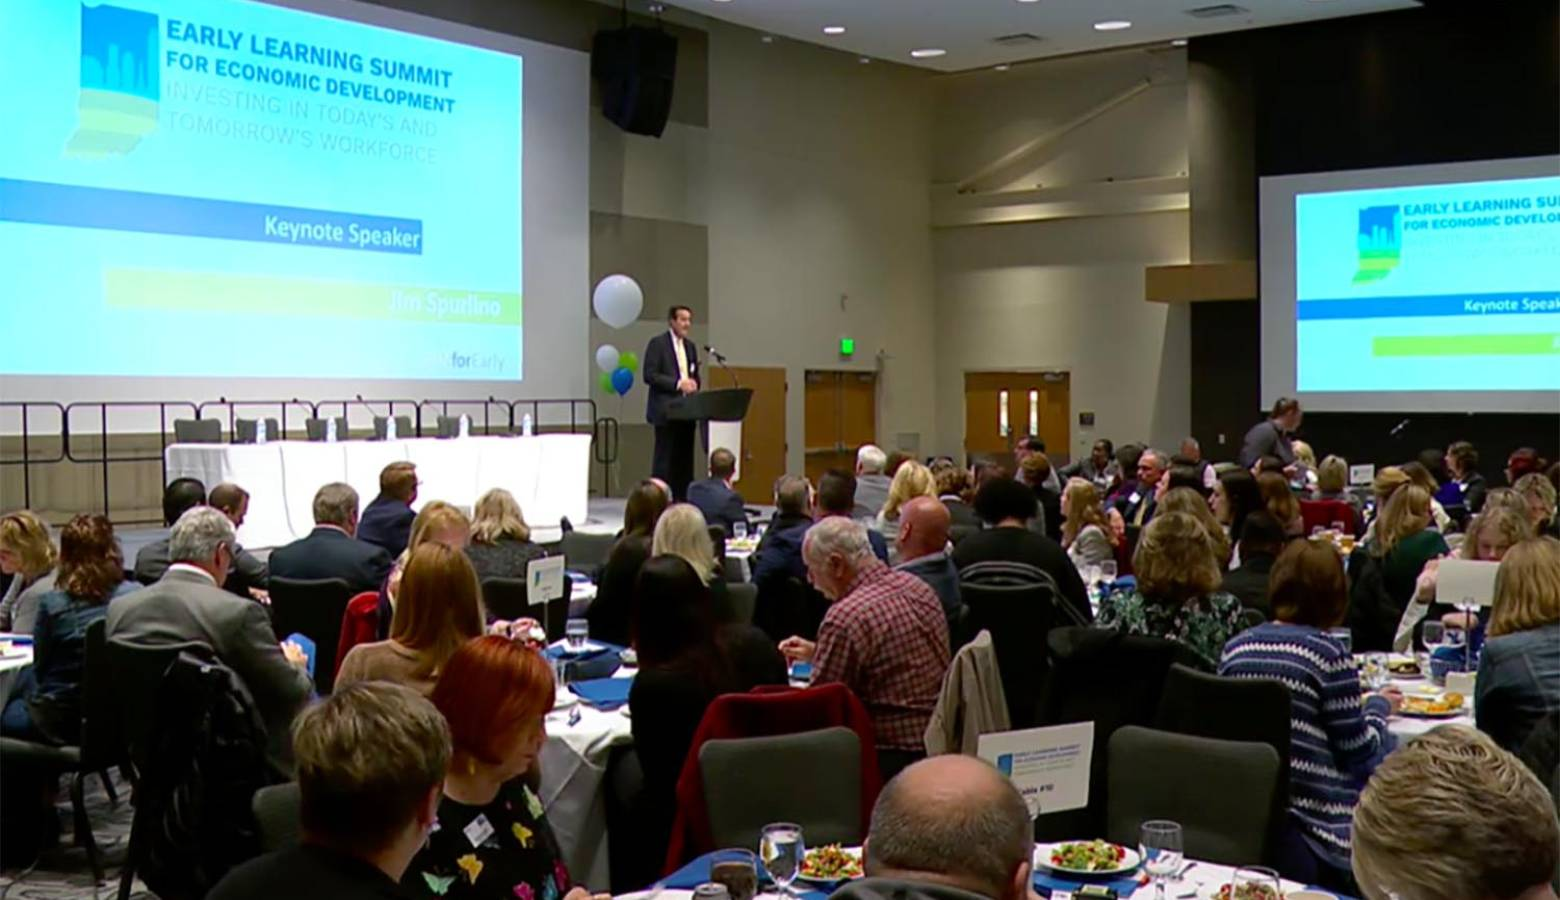 The Indiana Early Learning Summit brought together business leaders to discuss workforce issues related to childcare. (Courtesy of Indiana Early Learning Summit)